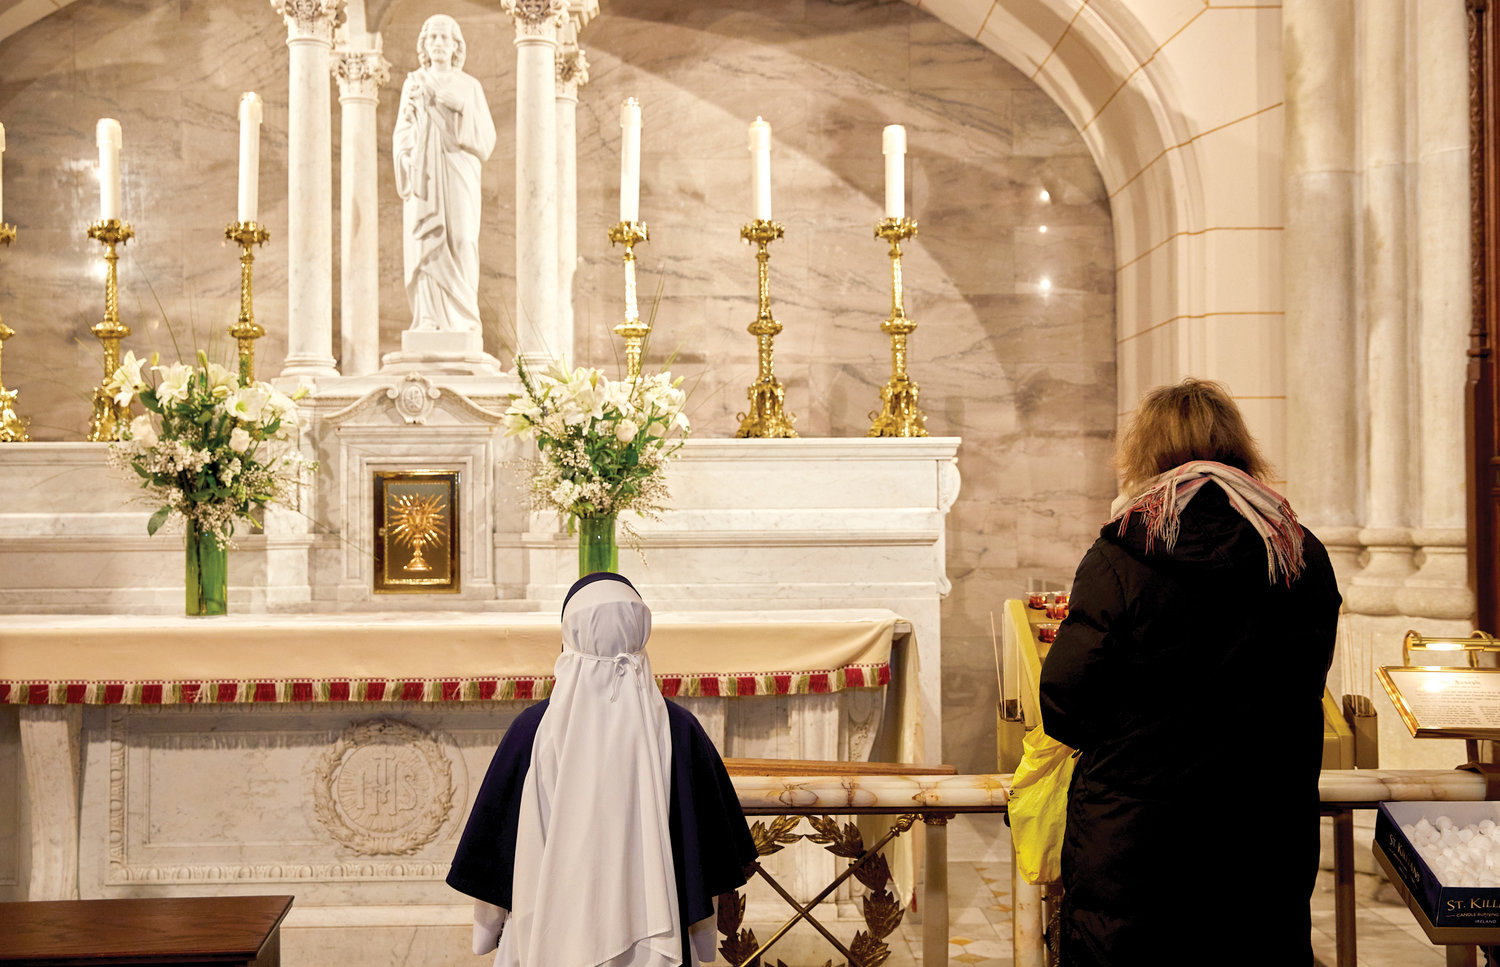 A Sister of Life kneels before the statue of St. Joseph that graces the side altar of the saint at St. Patrick's Cathedral March 19. Cardinal Dolan had just consecrated the Archdiocese to St. Joseph following the 7 a.m. Mass he offered at the cathedral's main altar.